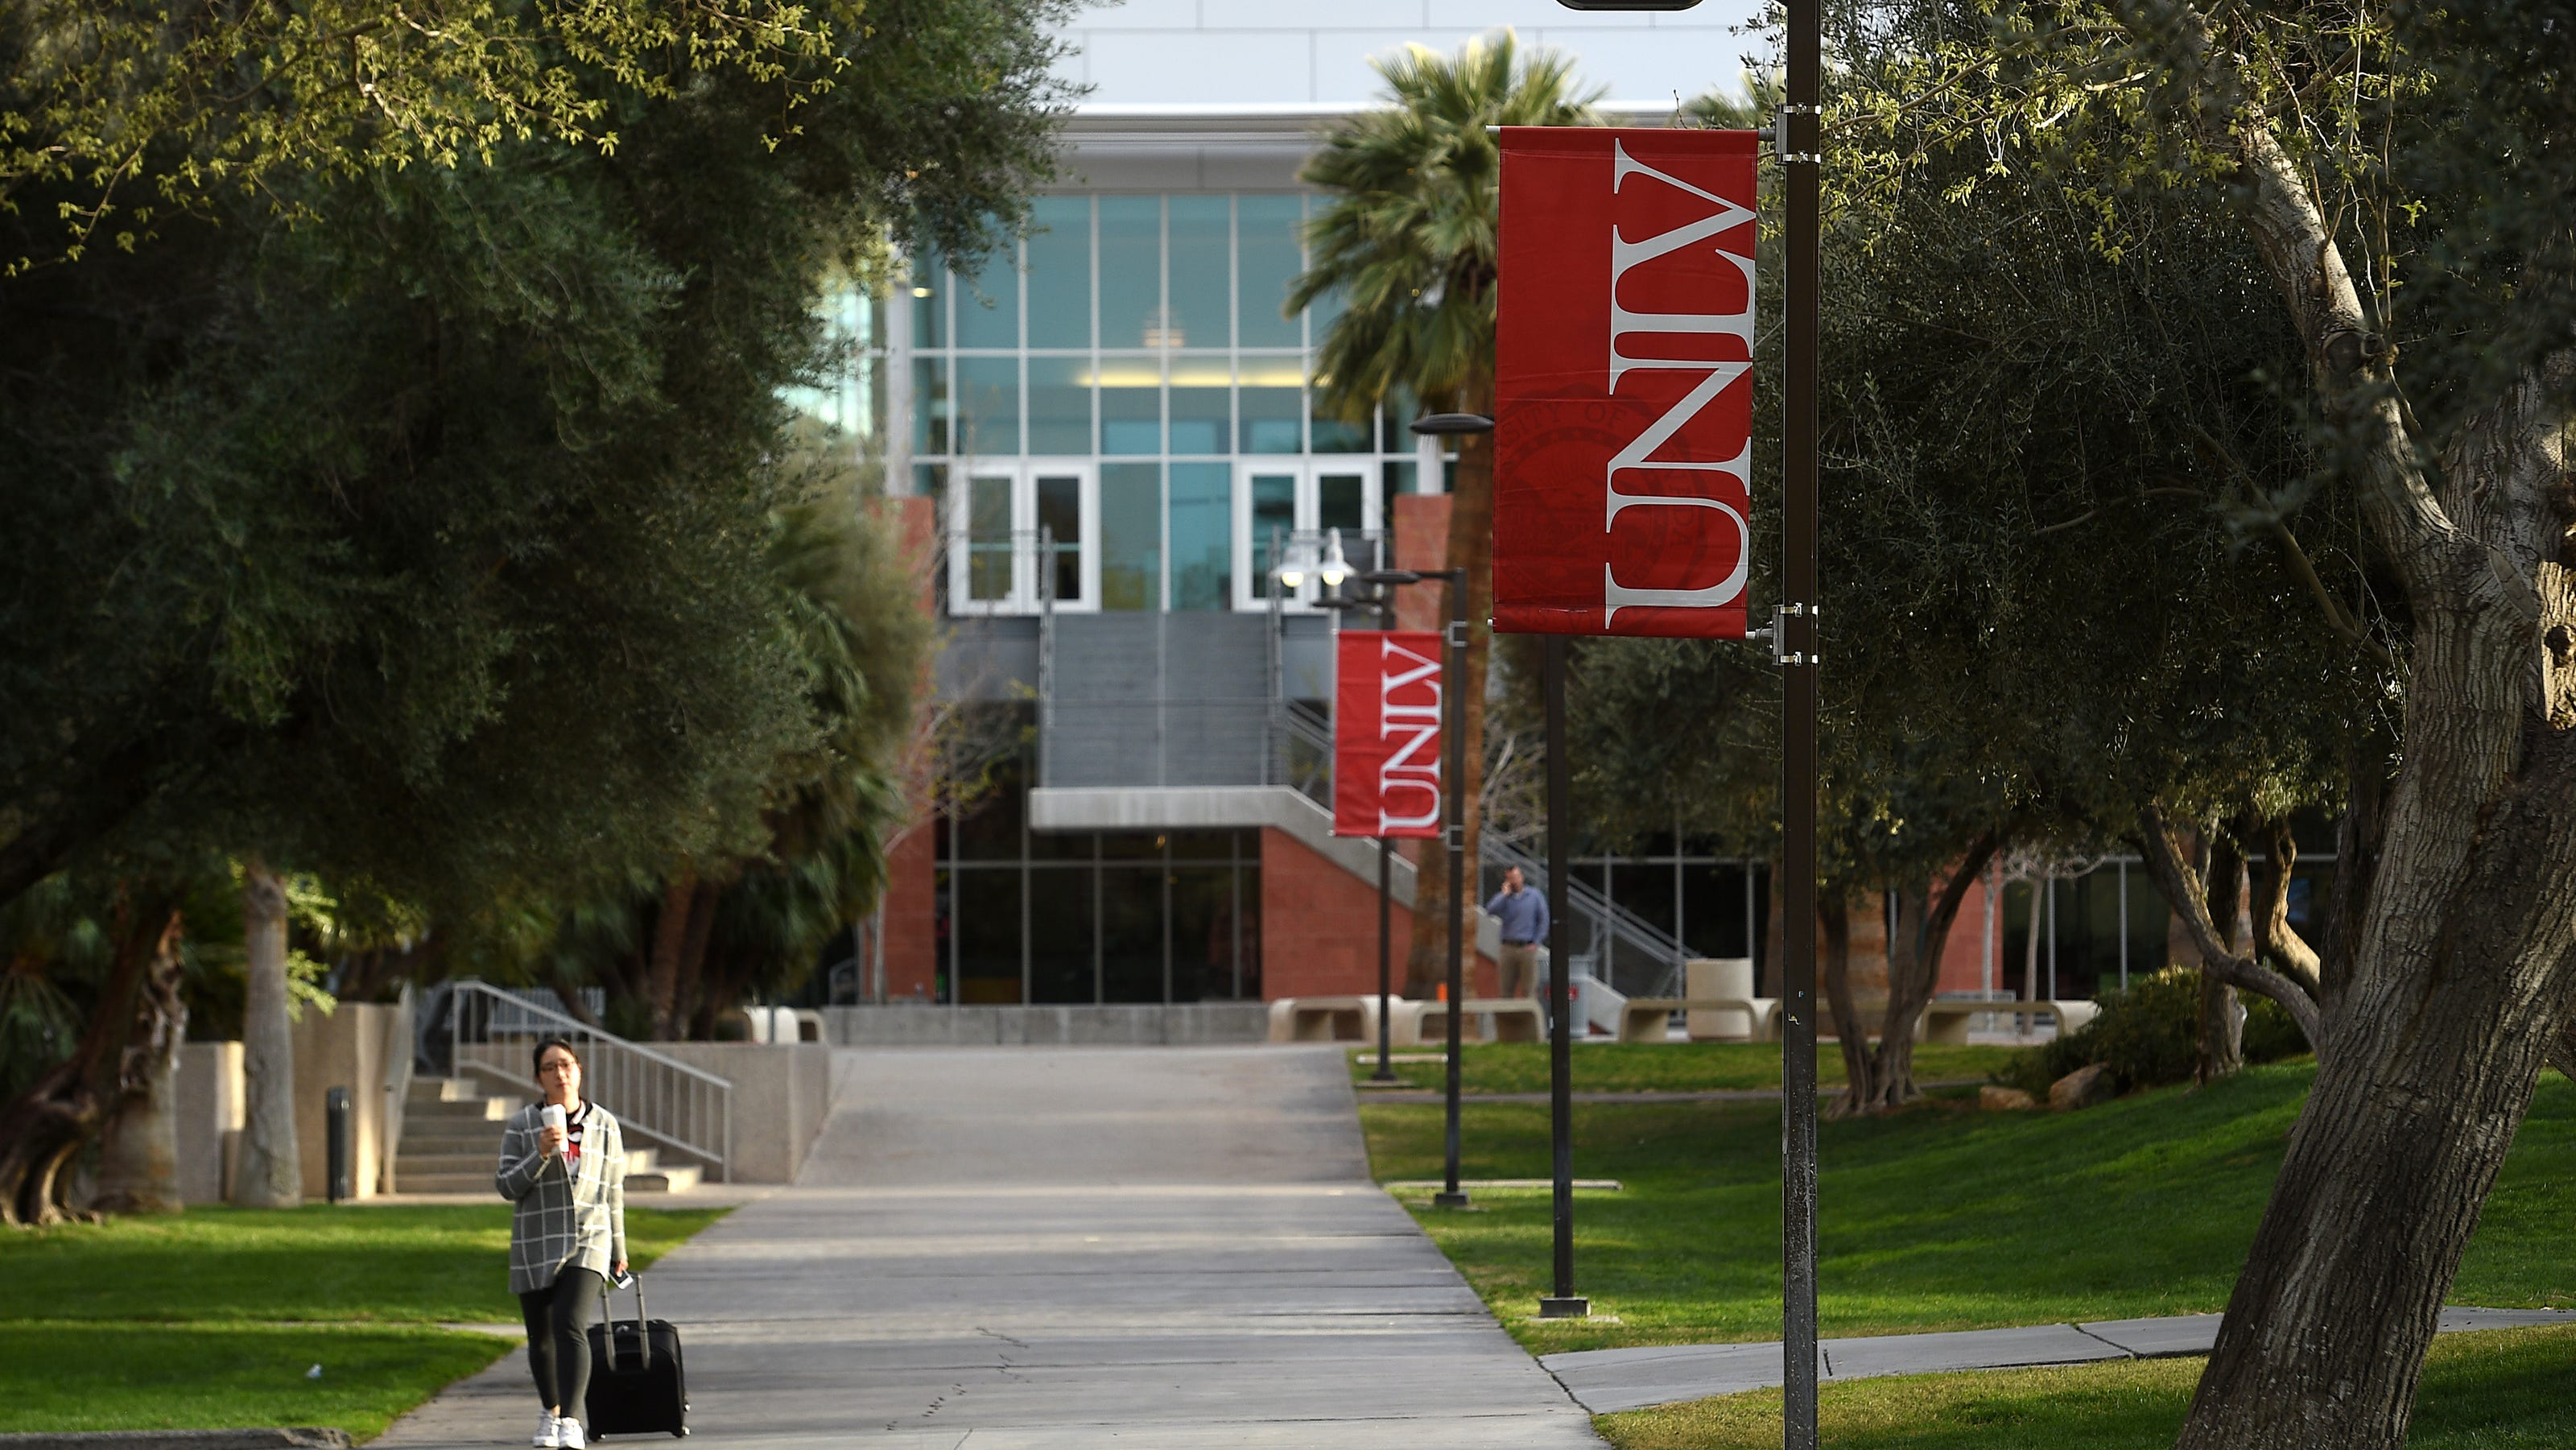 Unlv Instructors Cancel Classes After Threatening Note Found See more of unlv bookstore on facebook. unlv instructors cancel classes after